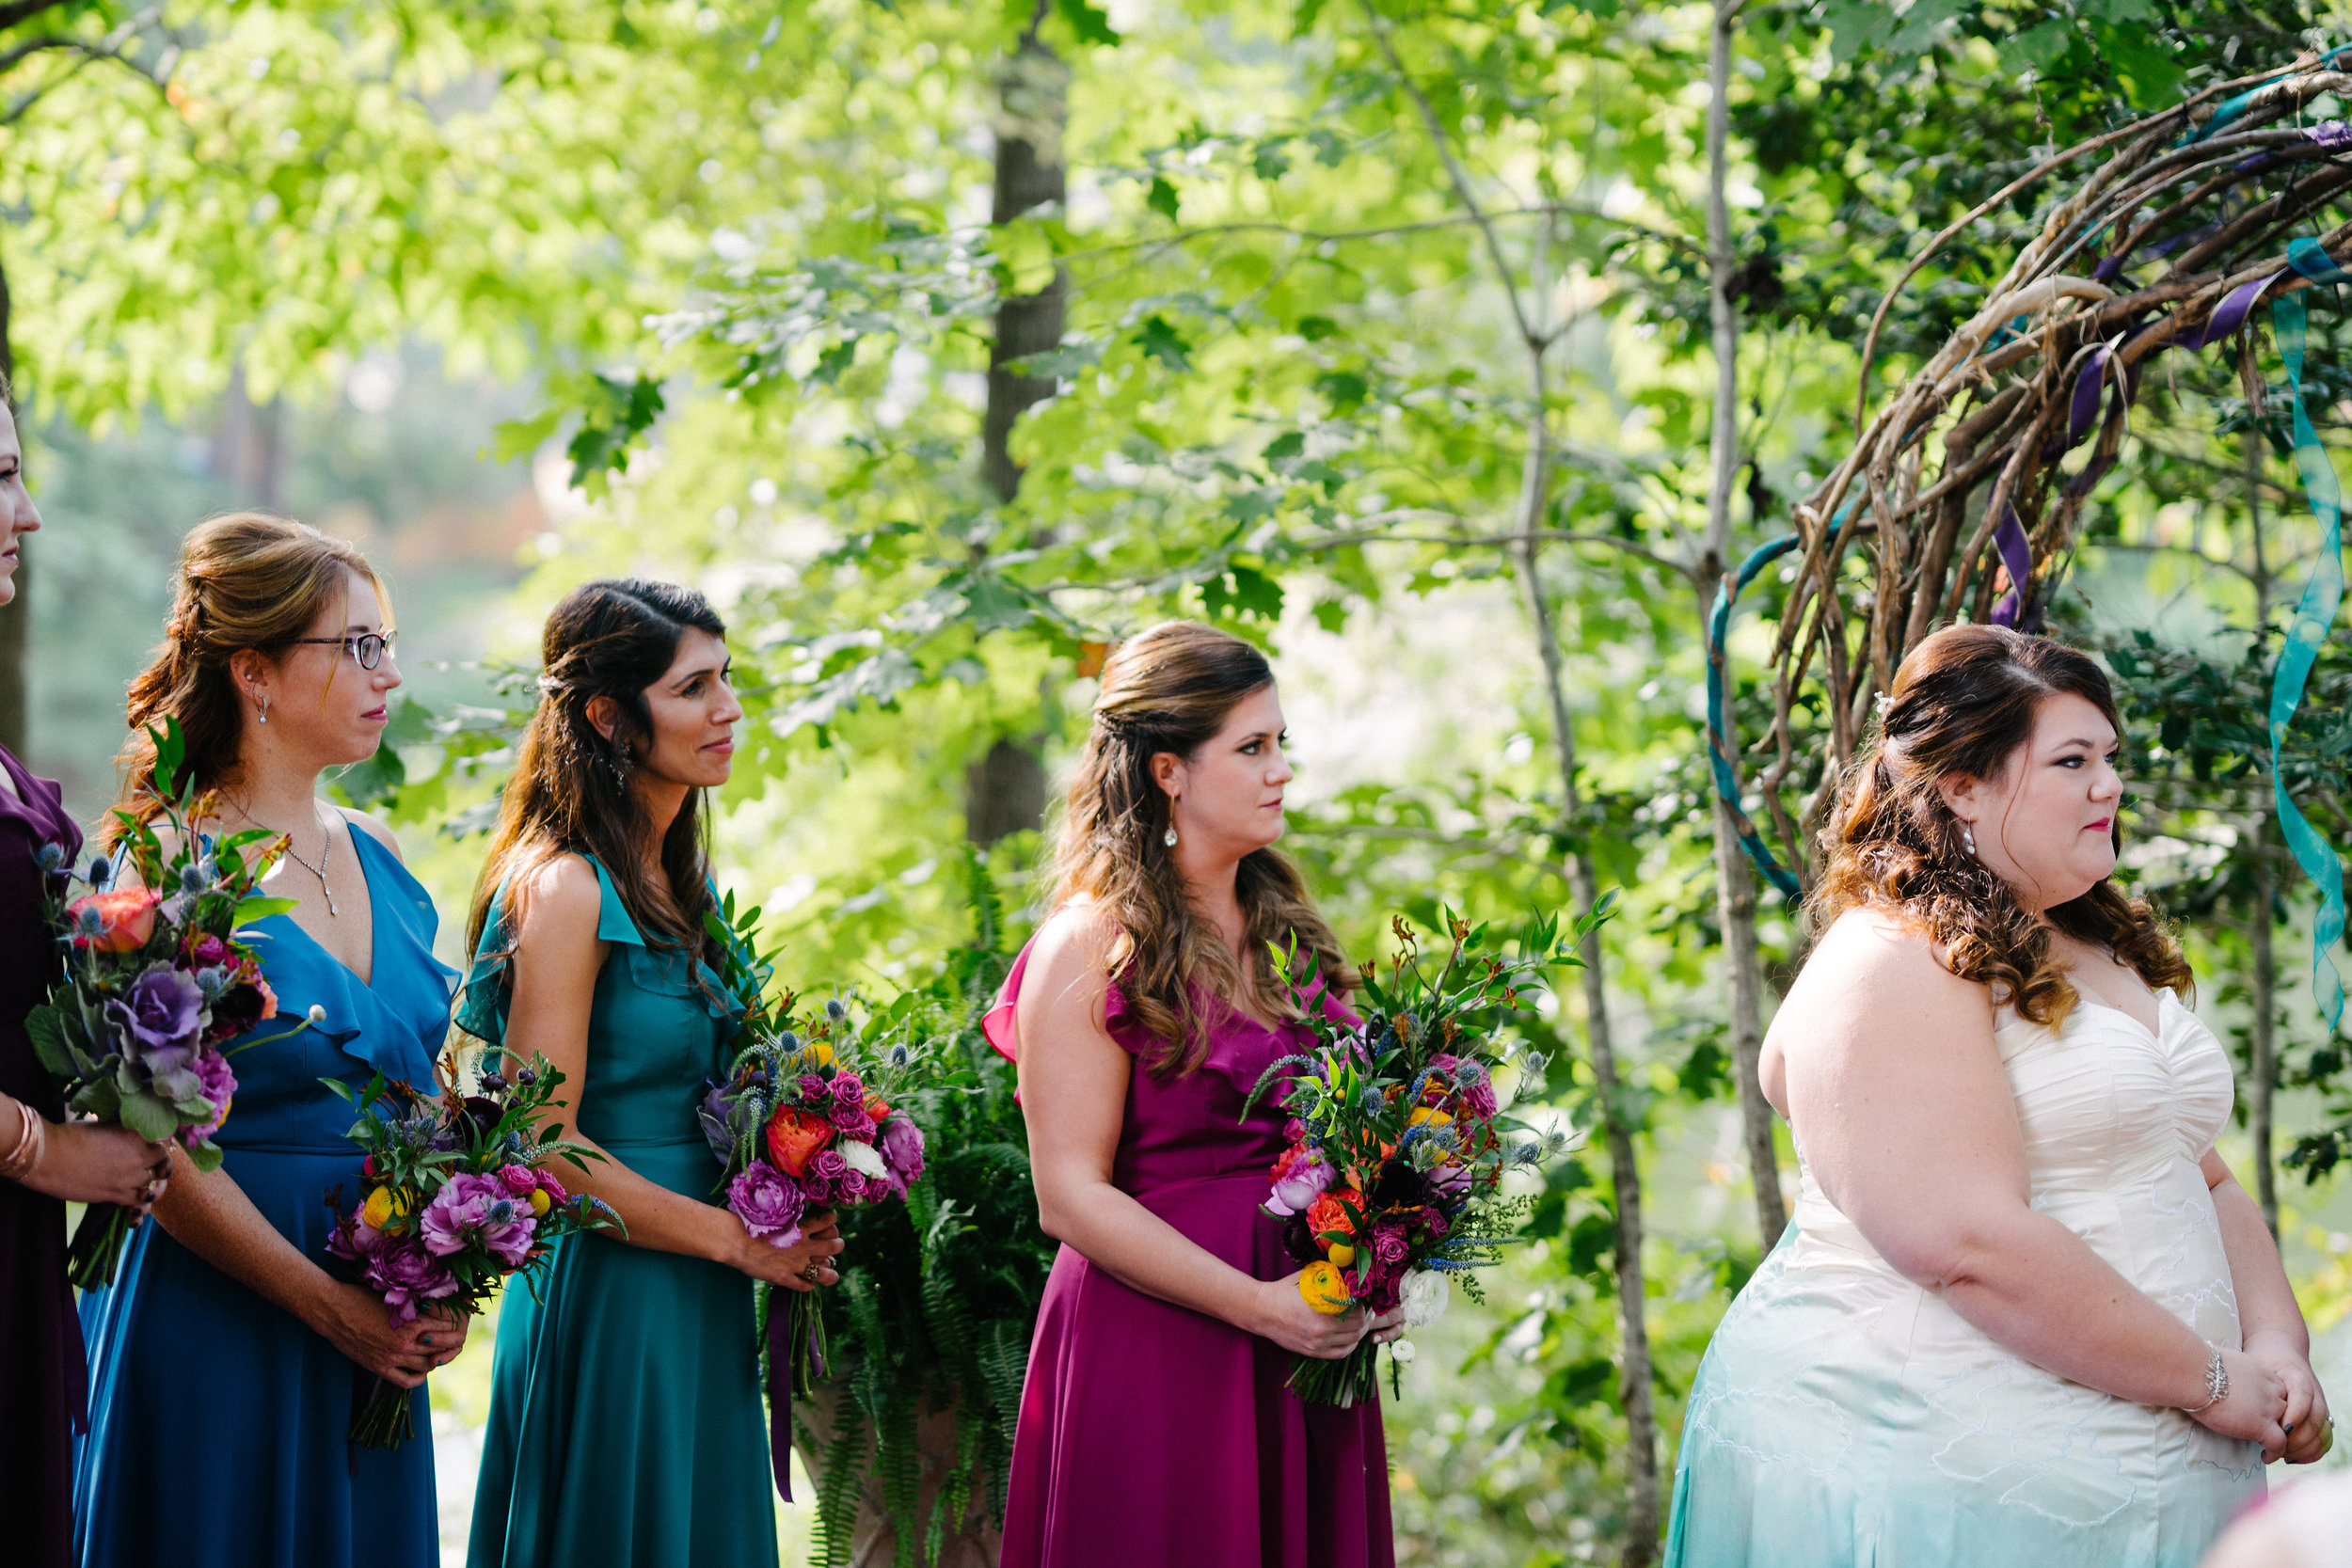 Katelin_Cobey_Raleigh_Garden_Wedding_2016-146.jpg